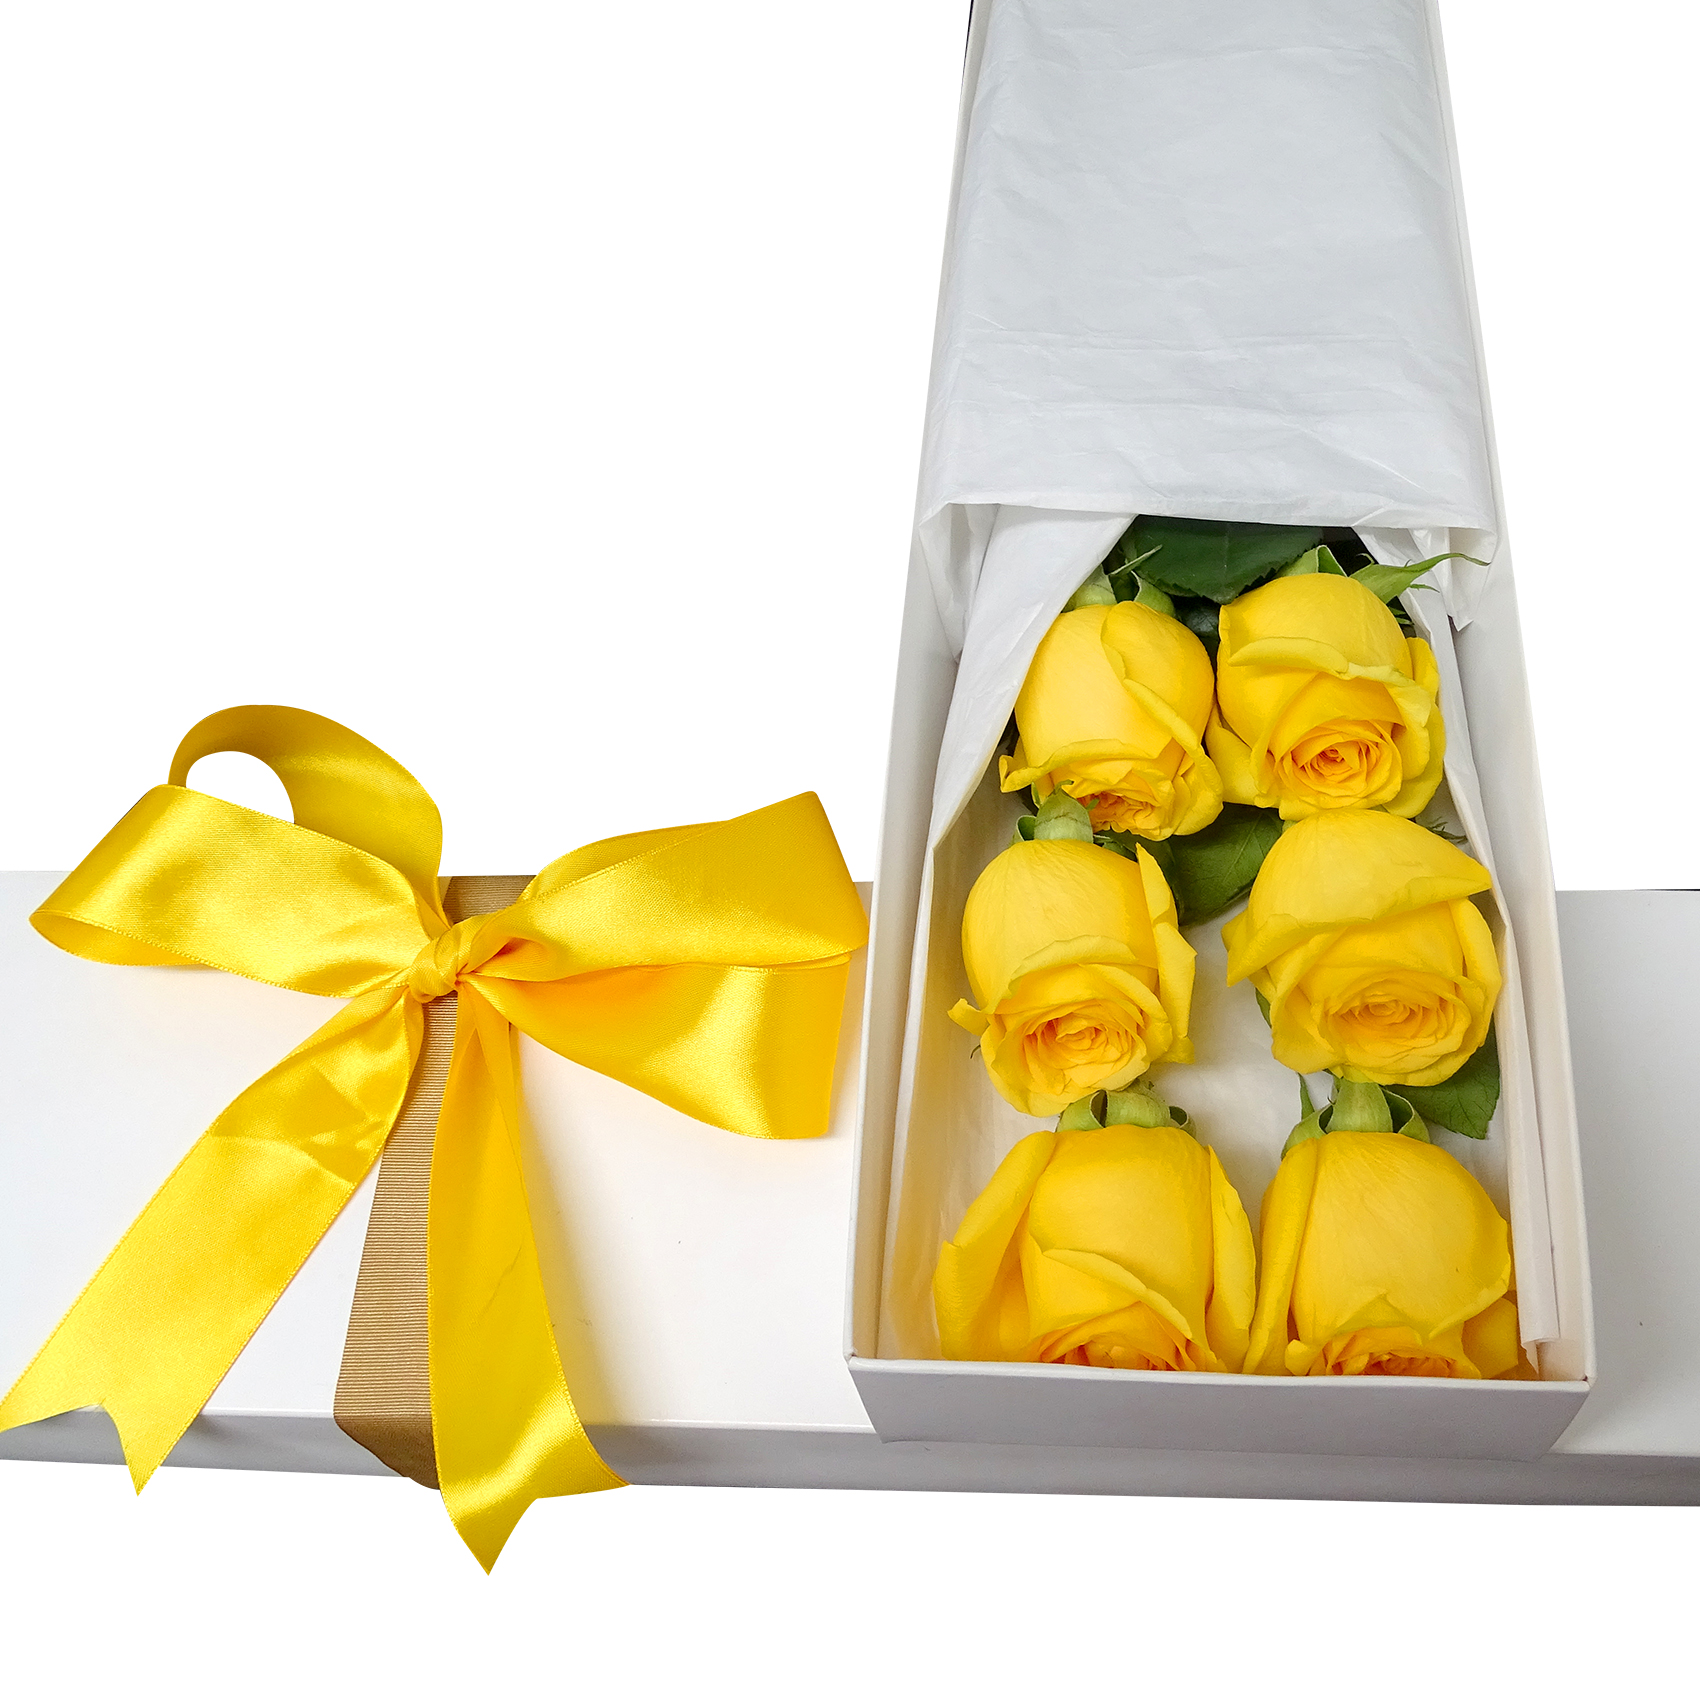 Caja con 6 bellas Rosas de color Amarillo